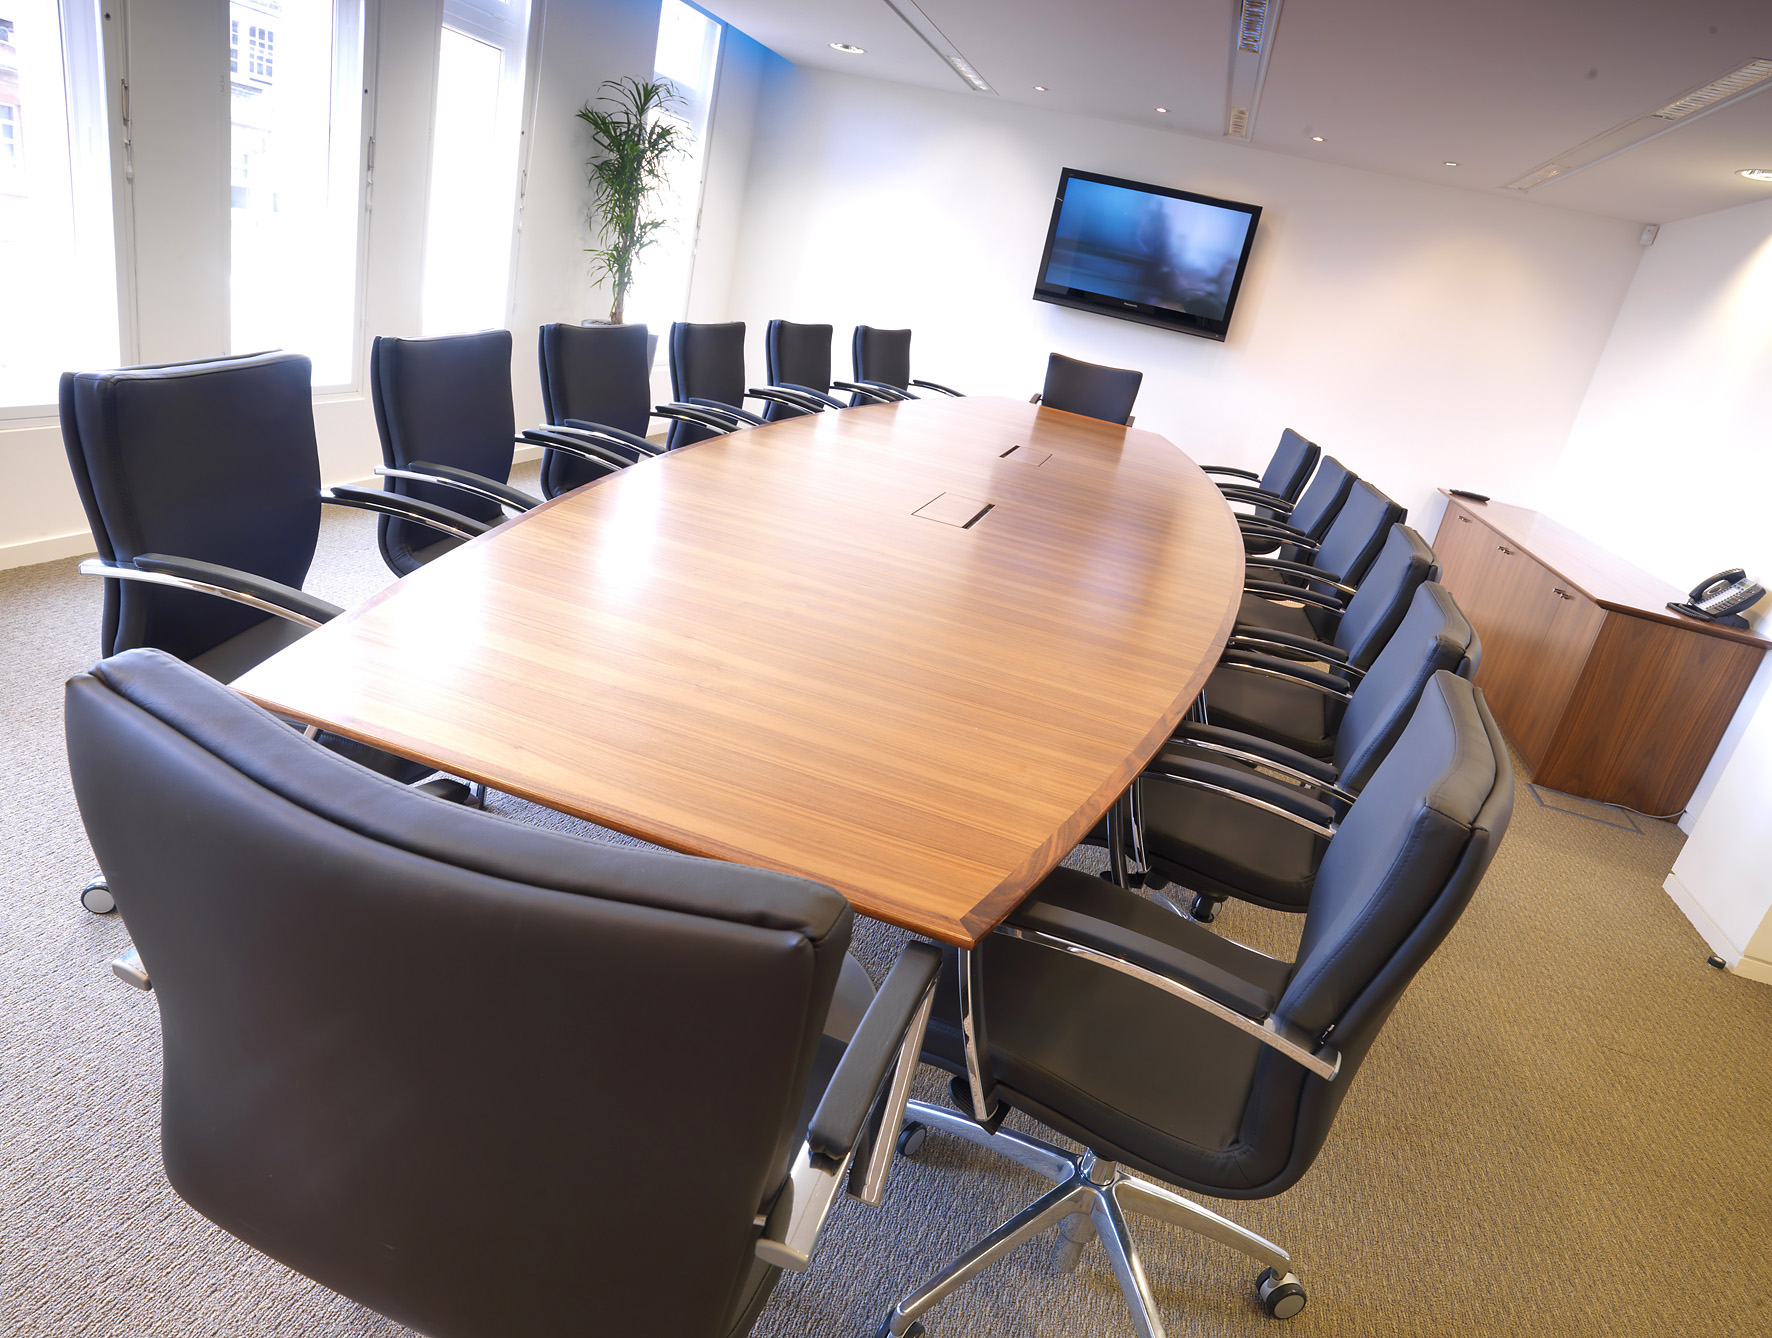 office conference table design. Executive Office Furniture Bespoke Boardroom Table Conference Design O